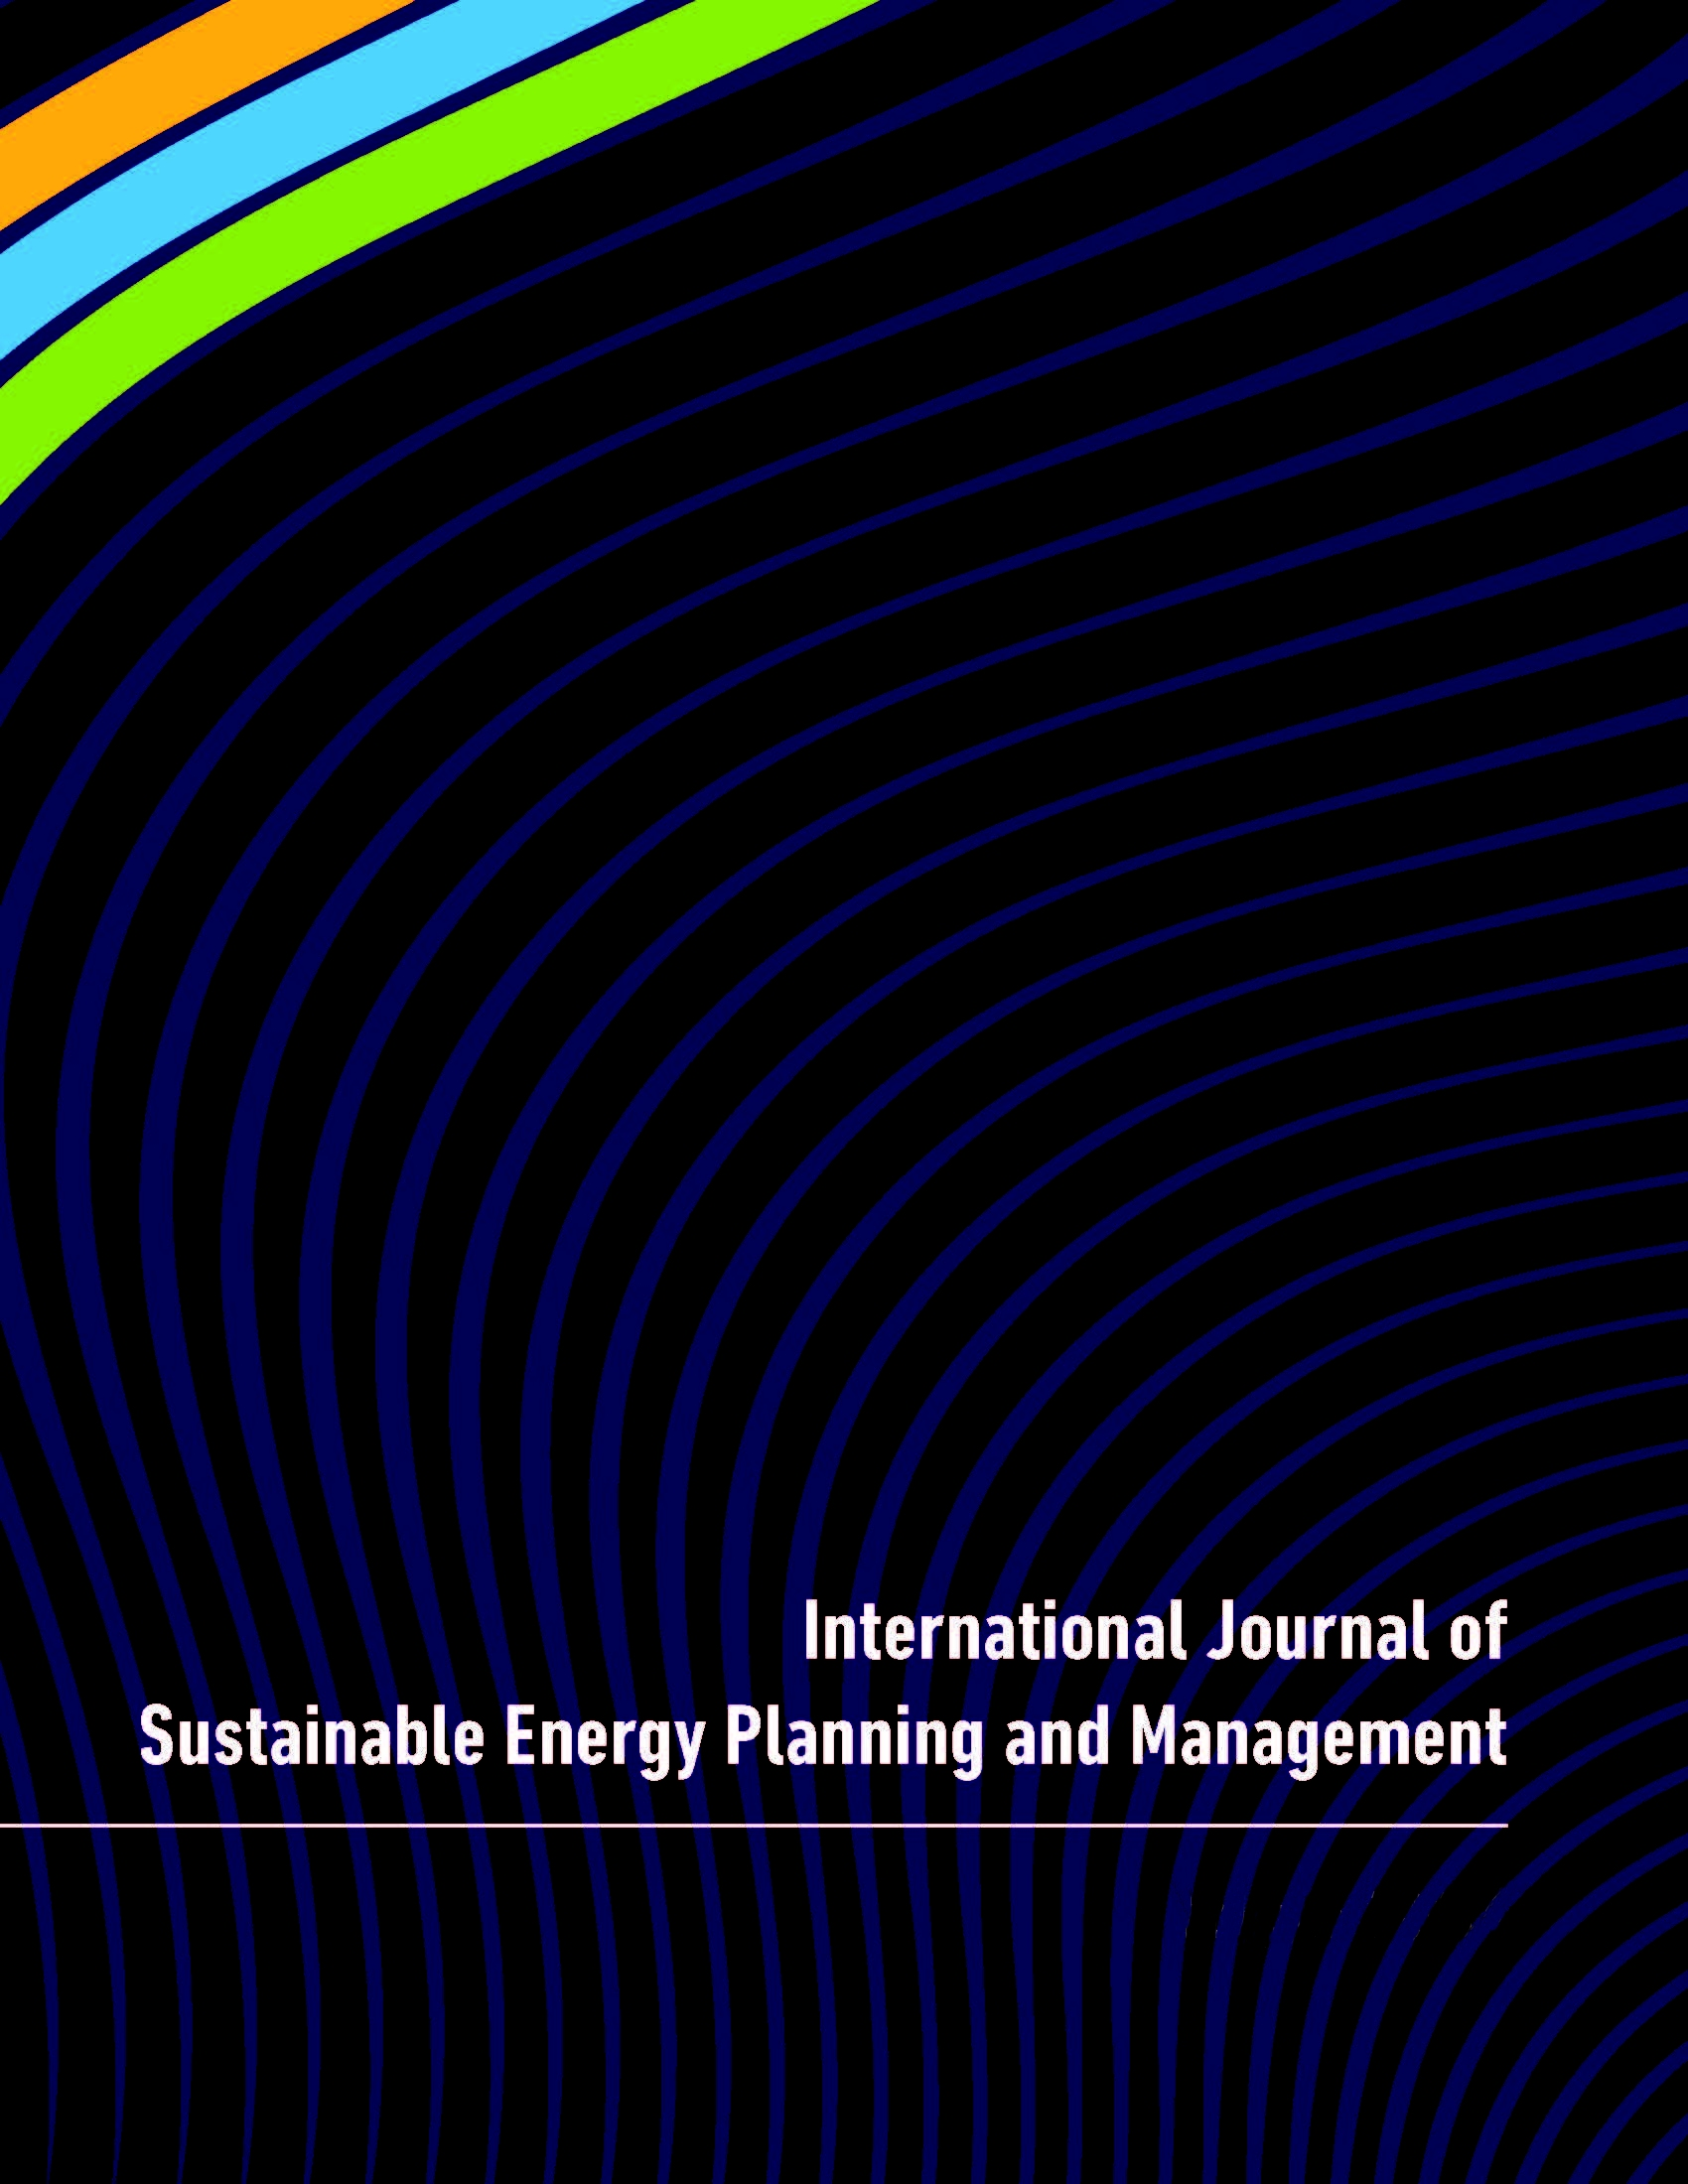 International Journal of Sustainable Energy Planning and